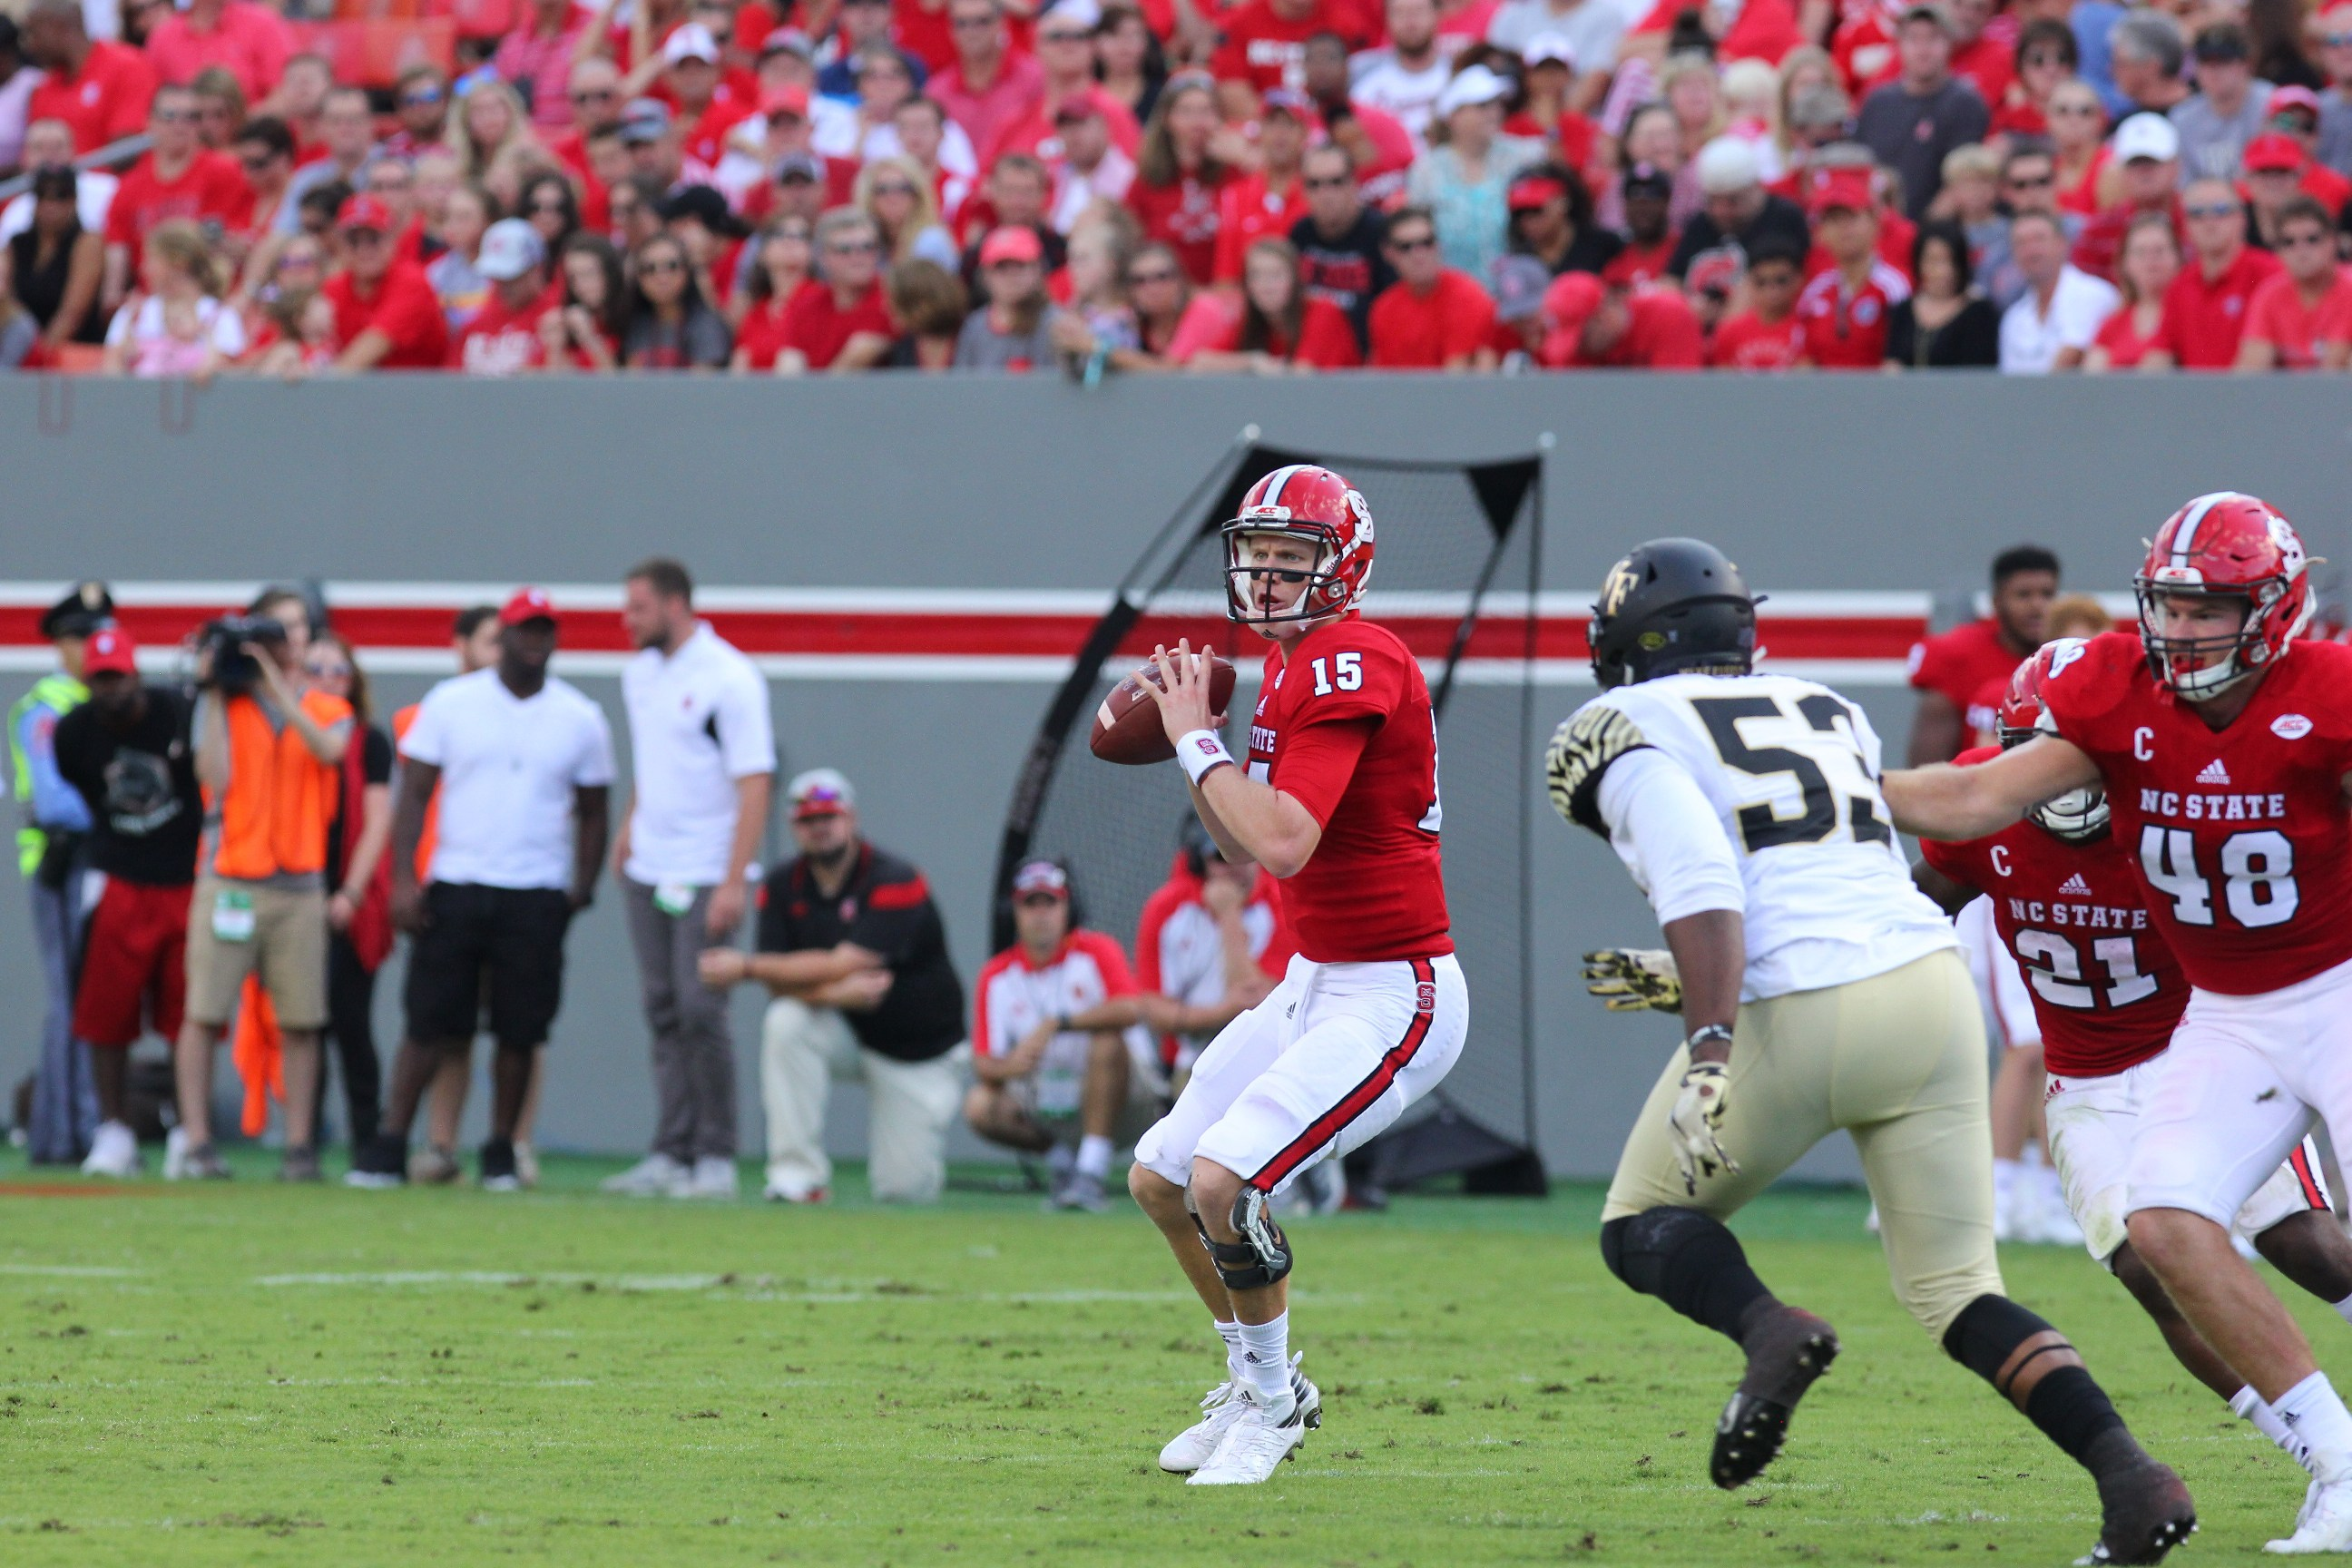 ncsu_vs_wfu_ryan_finley_throw